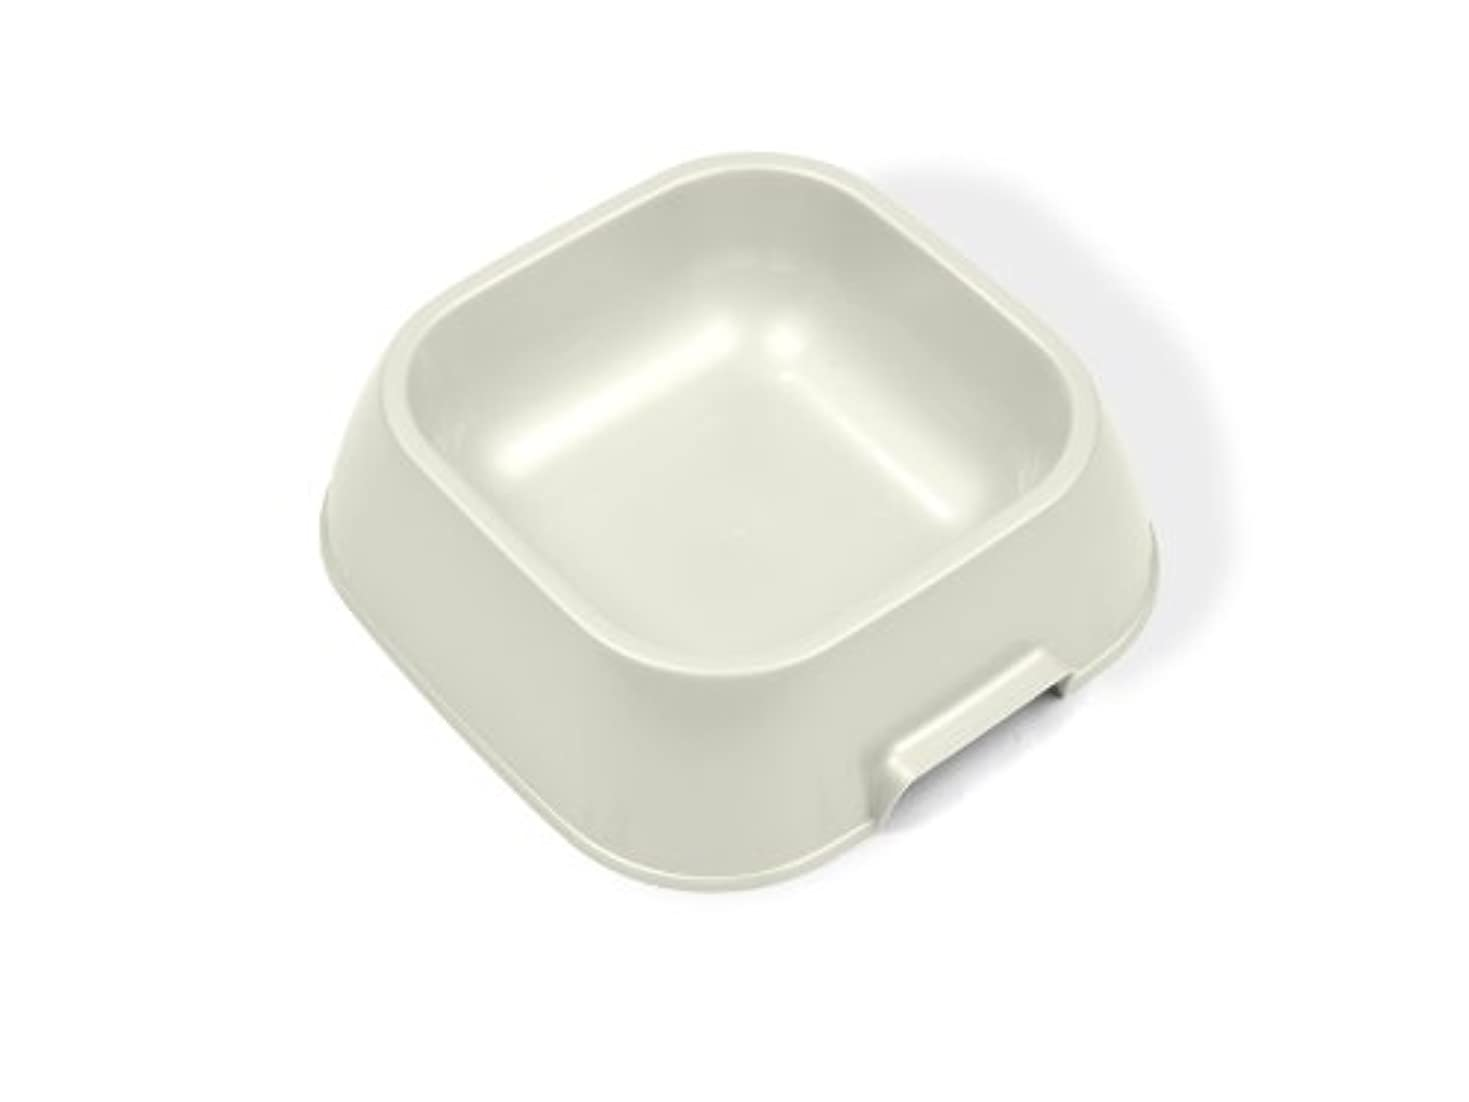 Pureness Lightweight Large Dish, 44-Ounce by Pureness